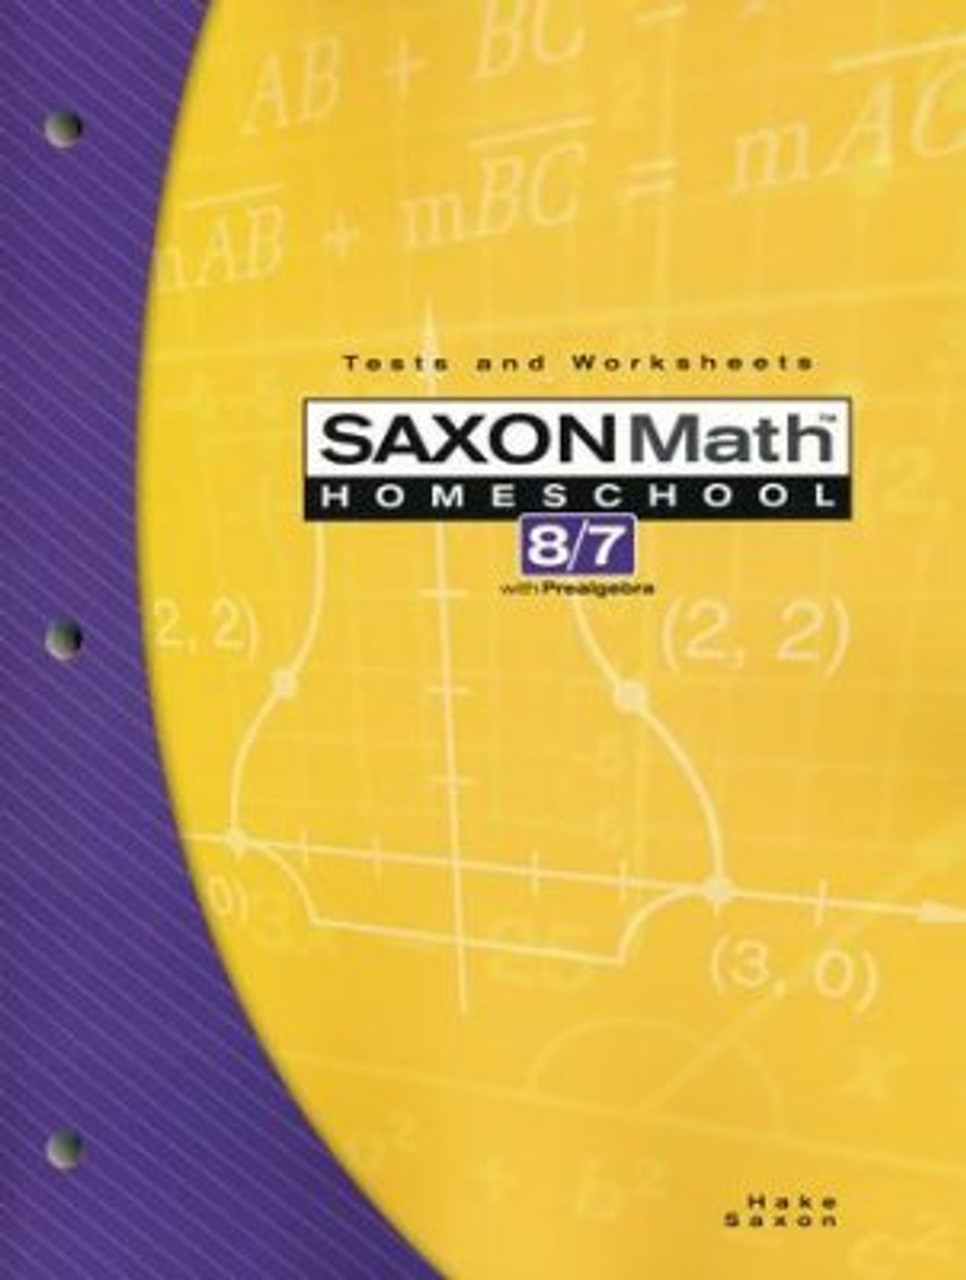 hight resolution of Saxon Math 8/7 3rd Edition Tests and Worksheets - Classroom Resource Center